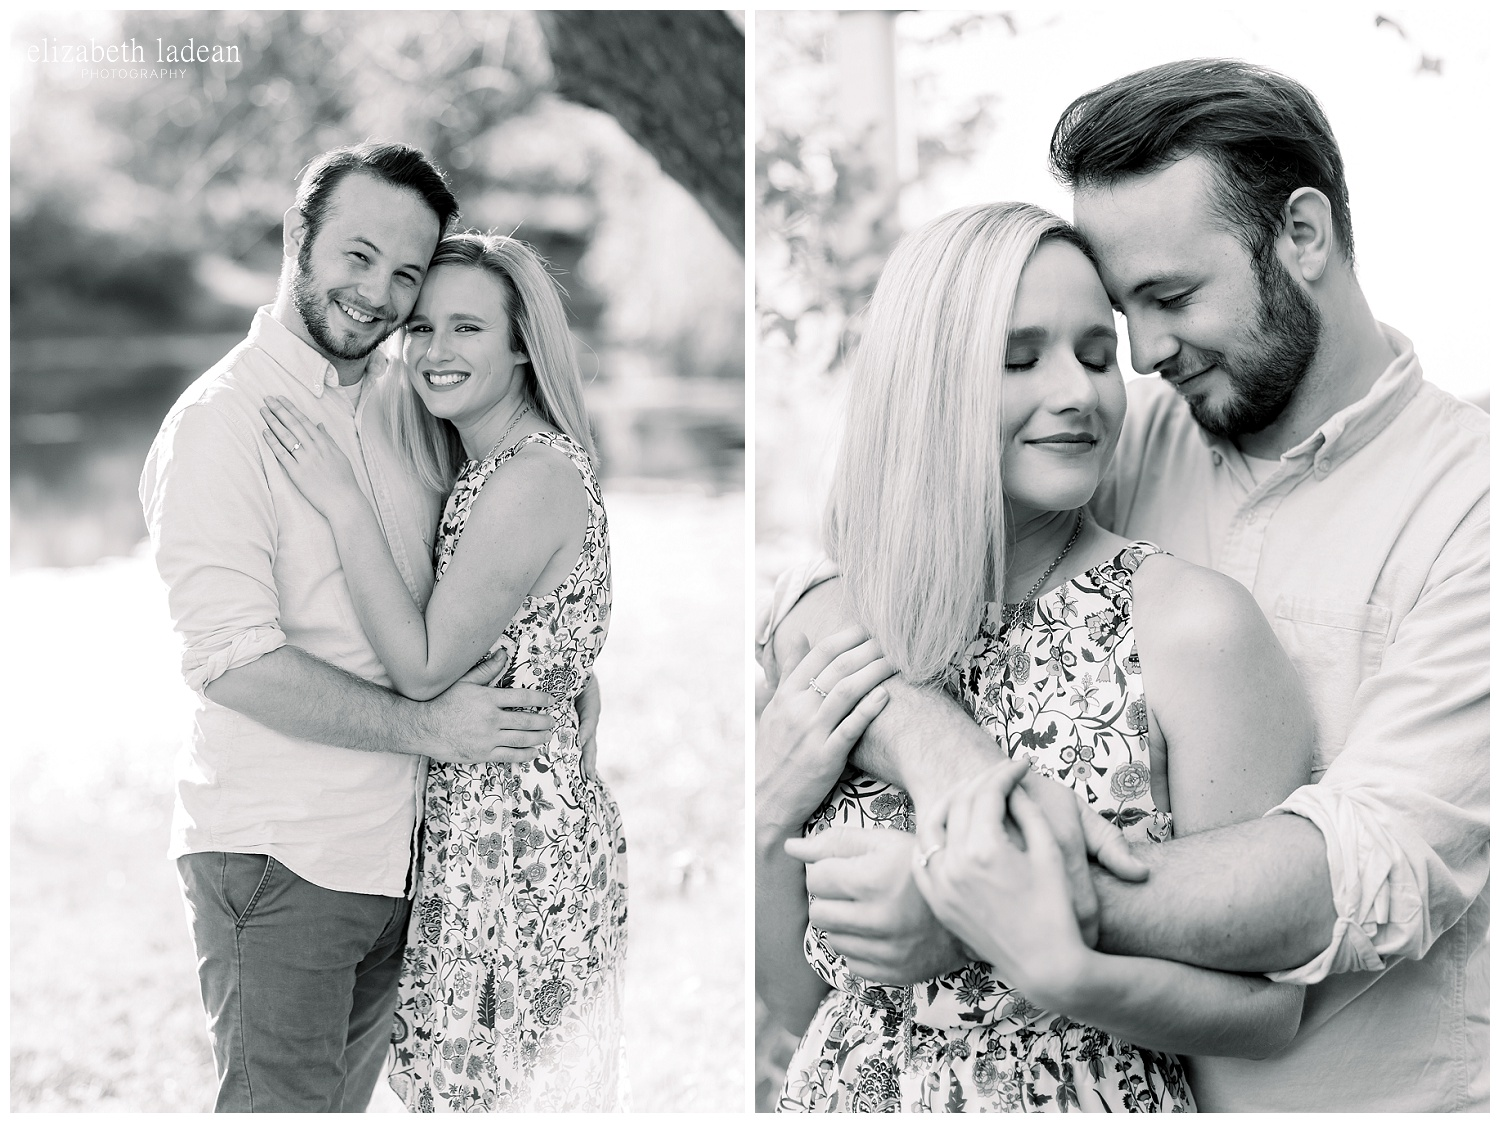 Kansas-City-Adventurous-Engagement-Photos-S+C2018-elizabeth-ladean-photography-photo_0372.jpg